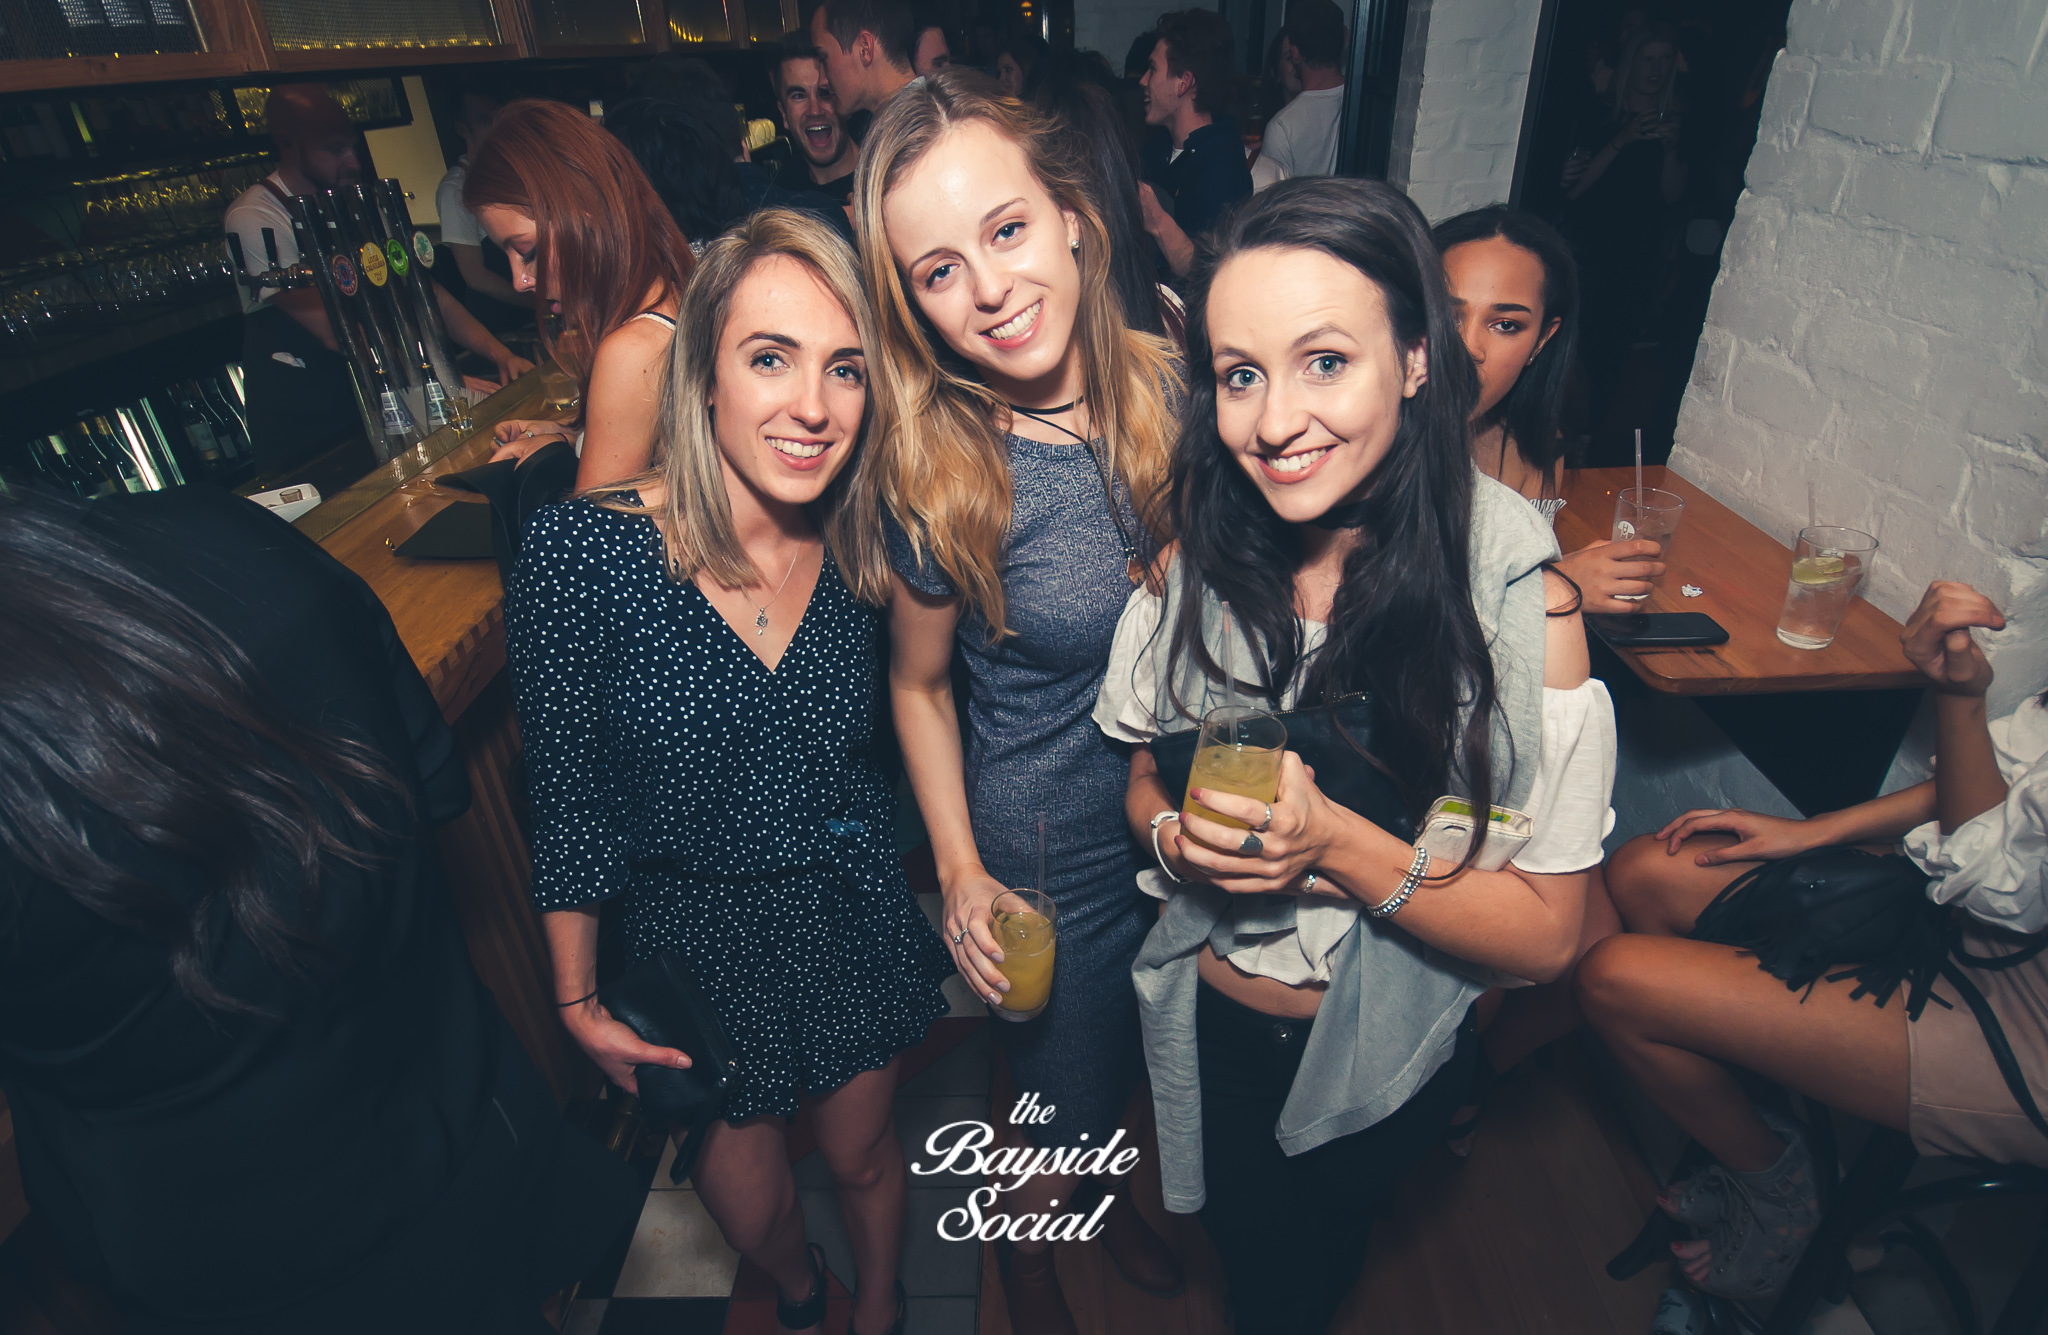 nightclub-photography-event-1-7